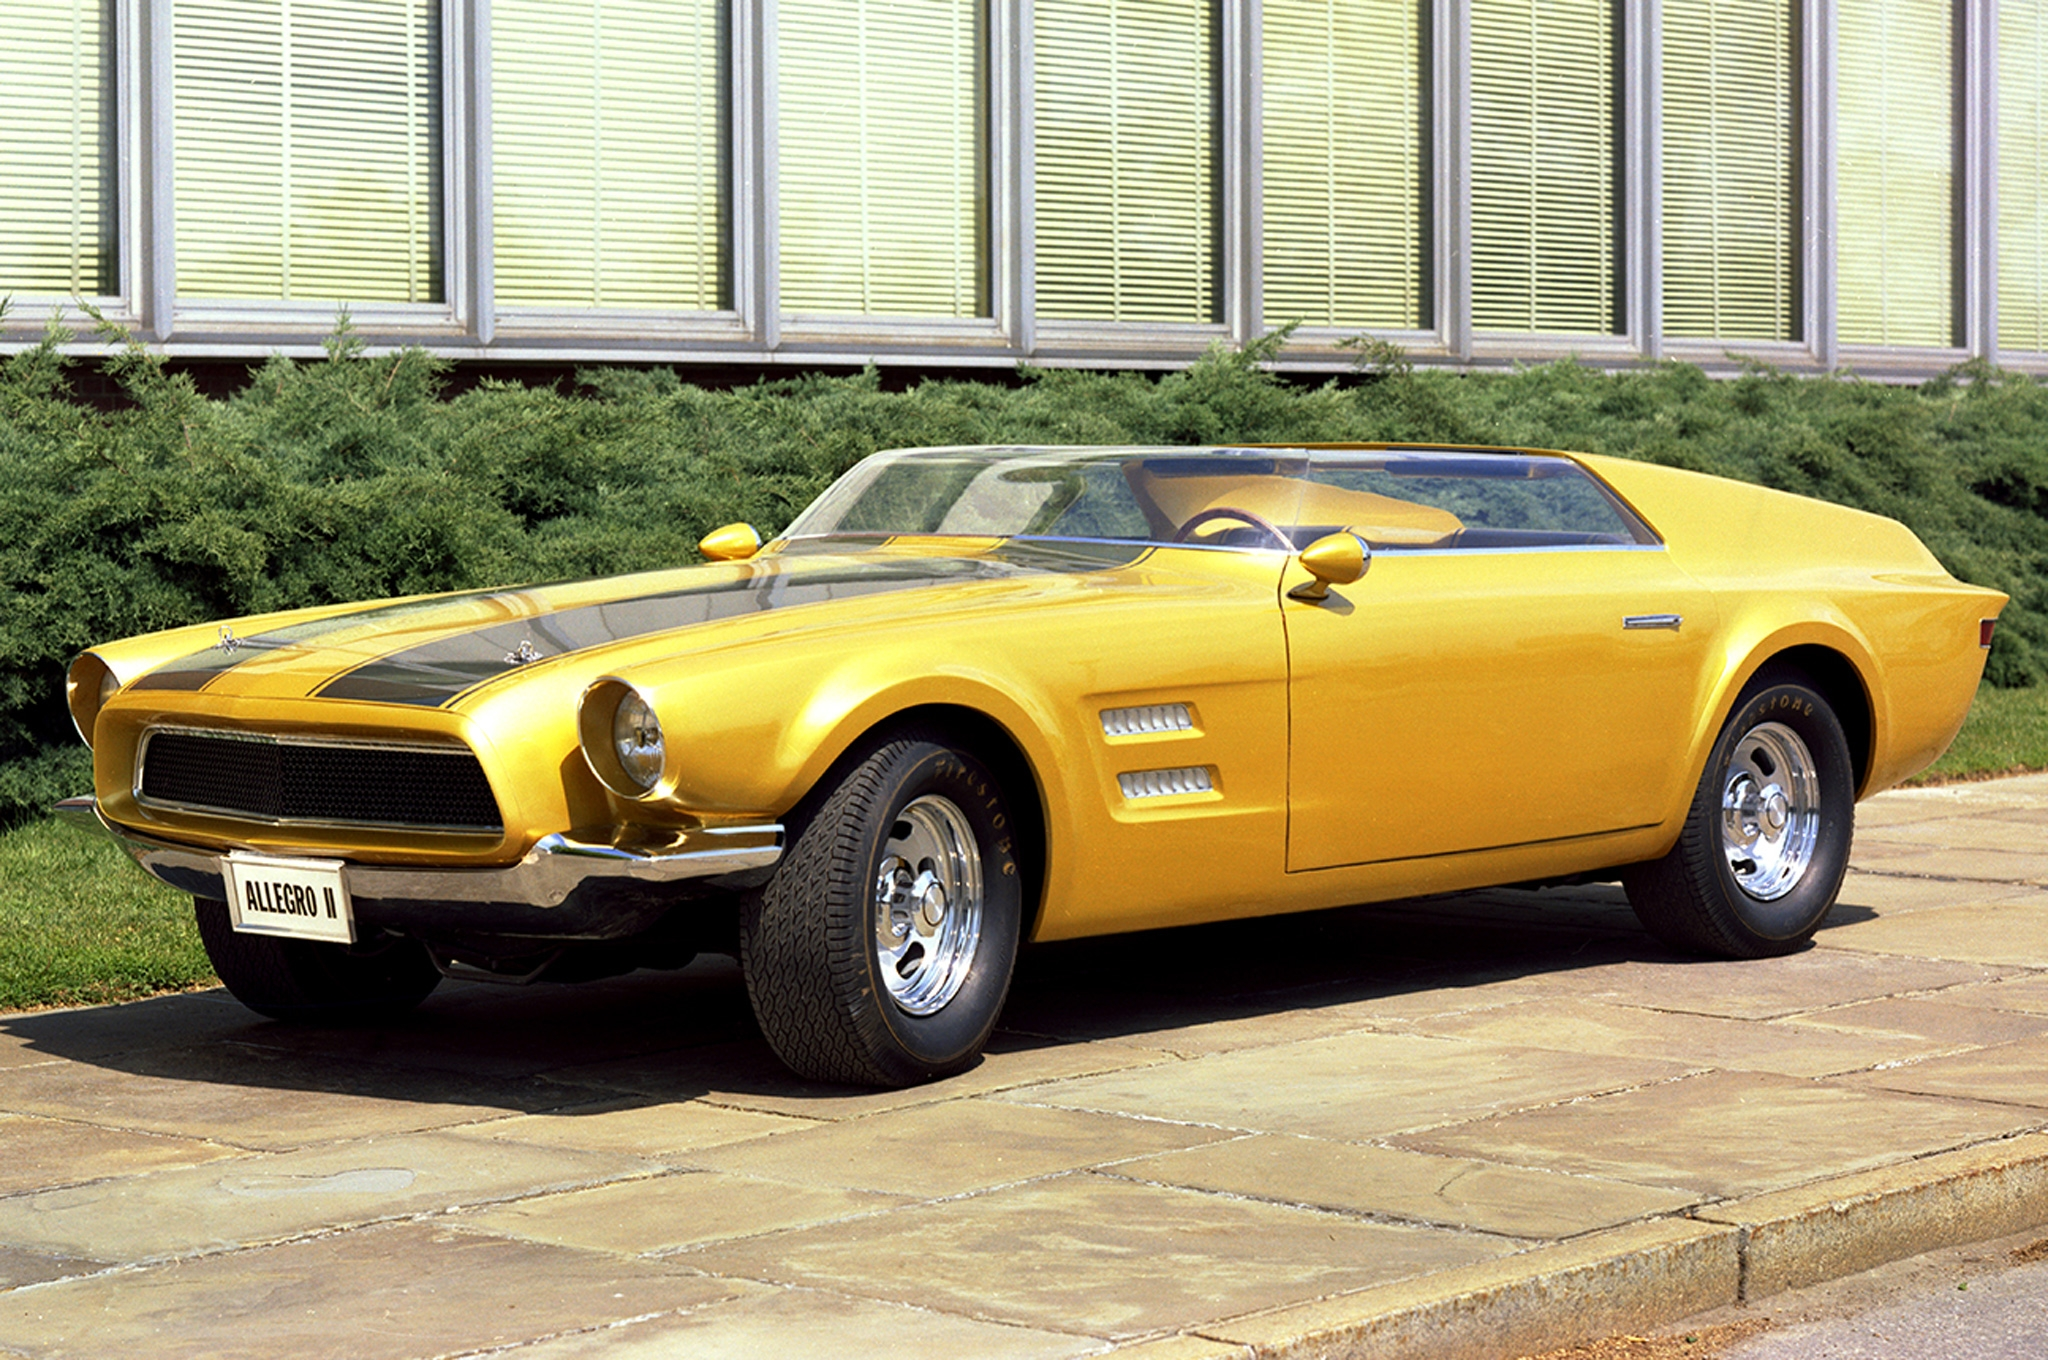 1967р. Allegro II Concept, фото Ford Mustang